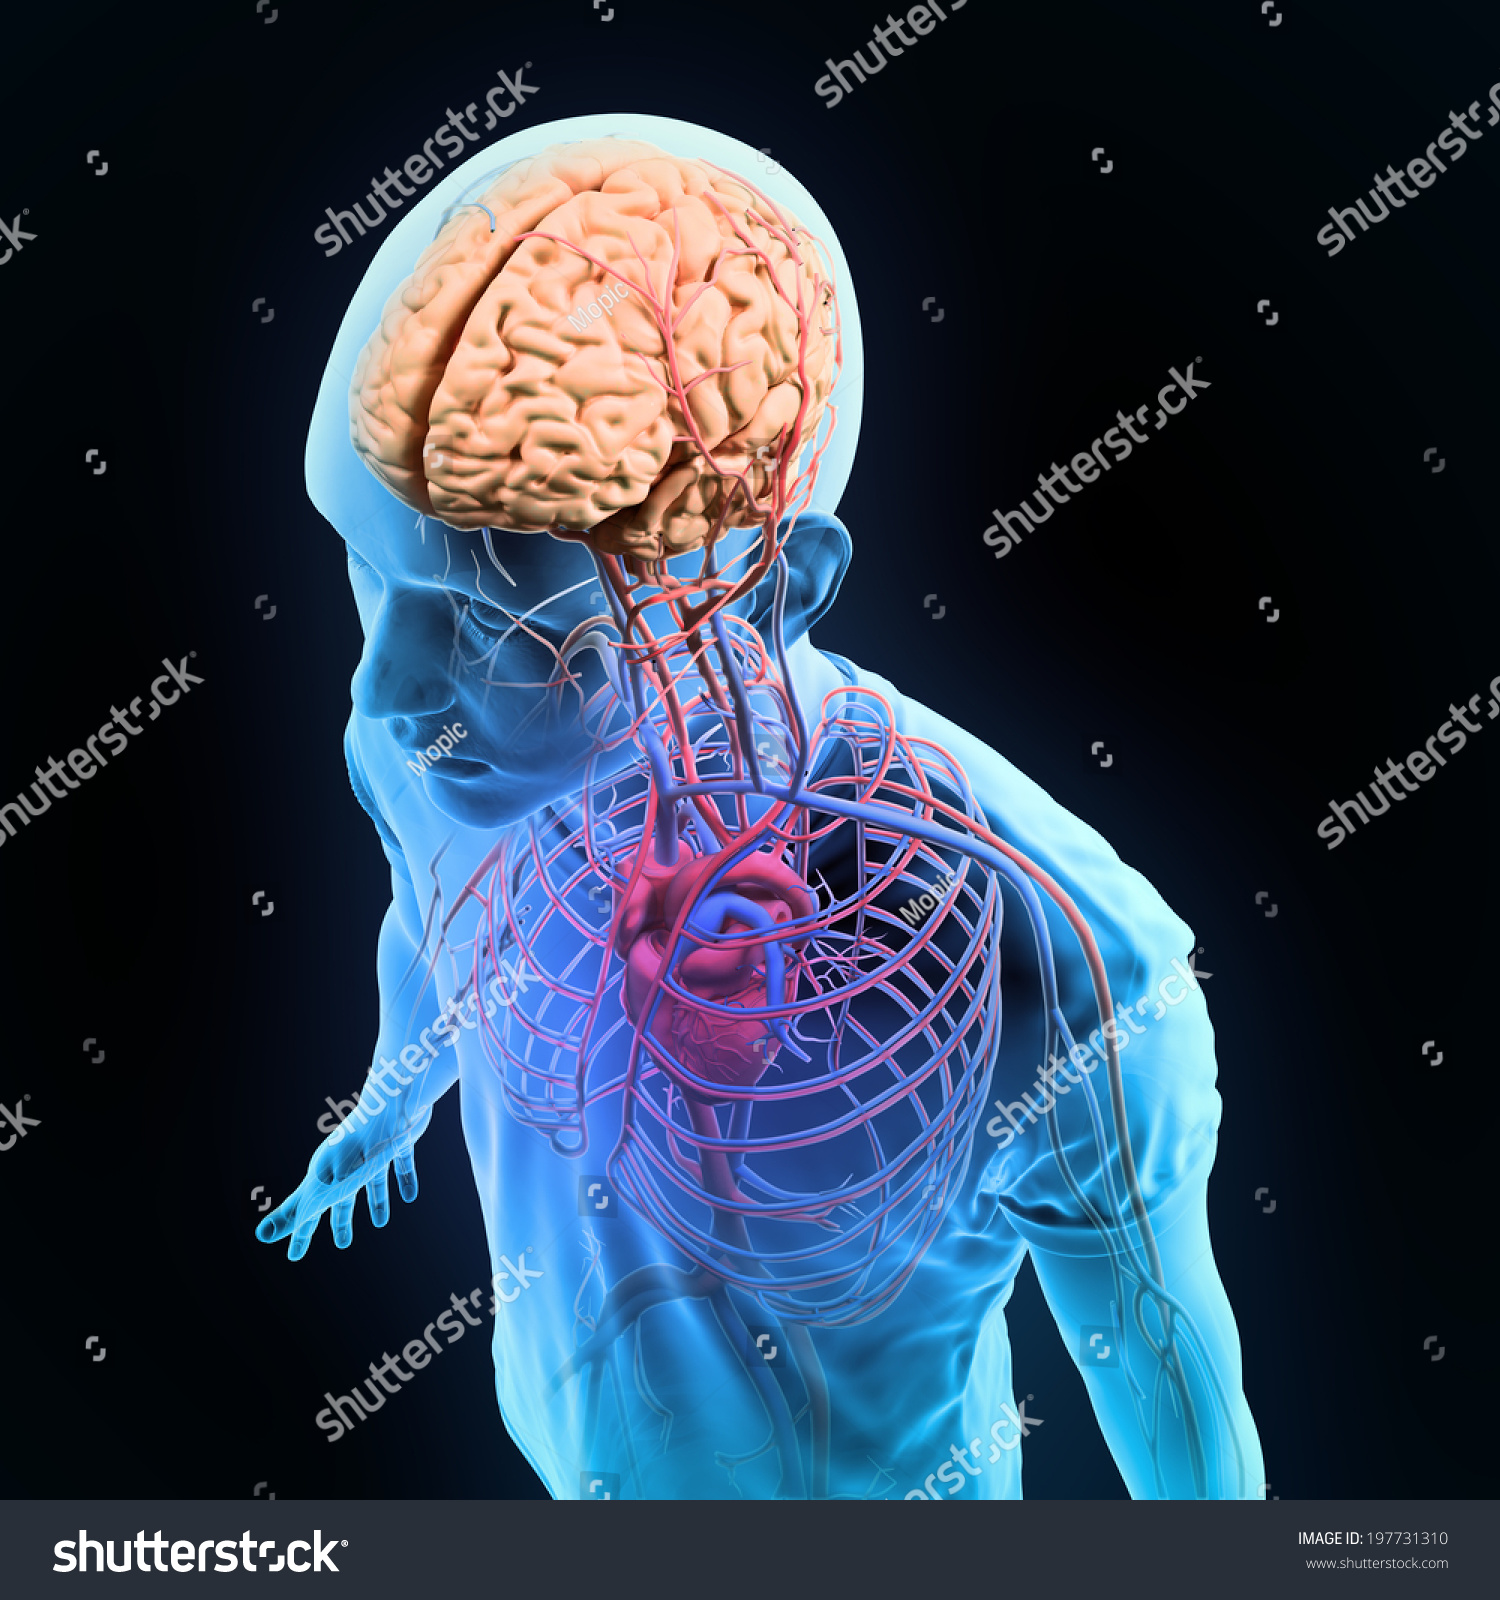 Human Anatomy Illustration Central Nervous System Stock